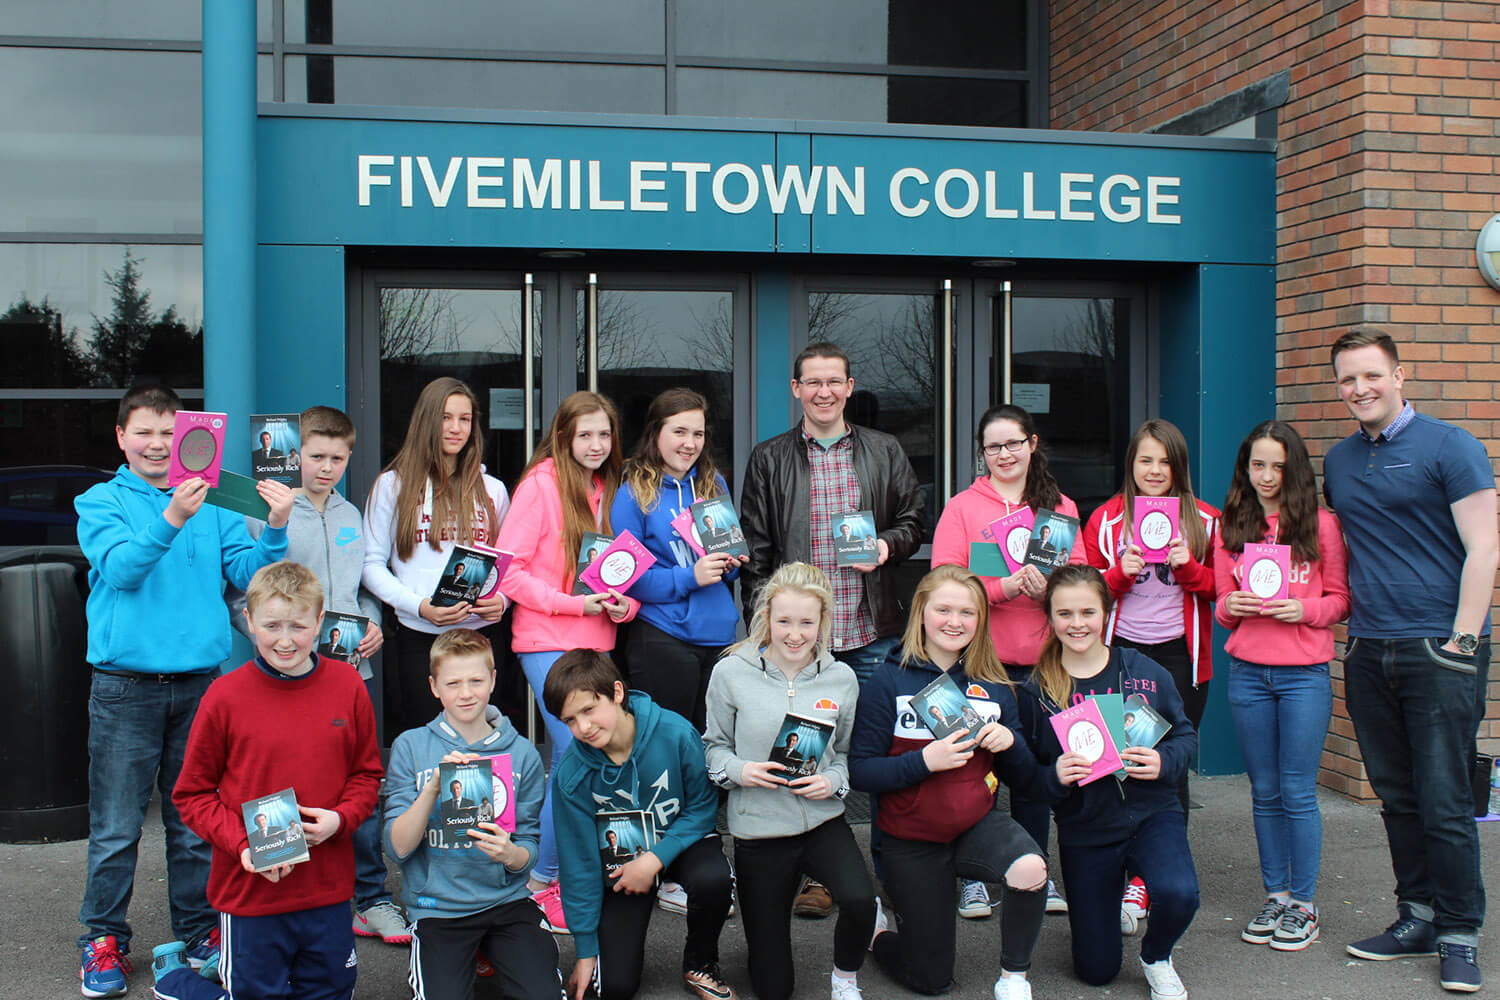 The LMI Youth and Schools Outreach Team at Fivemiletown College.